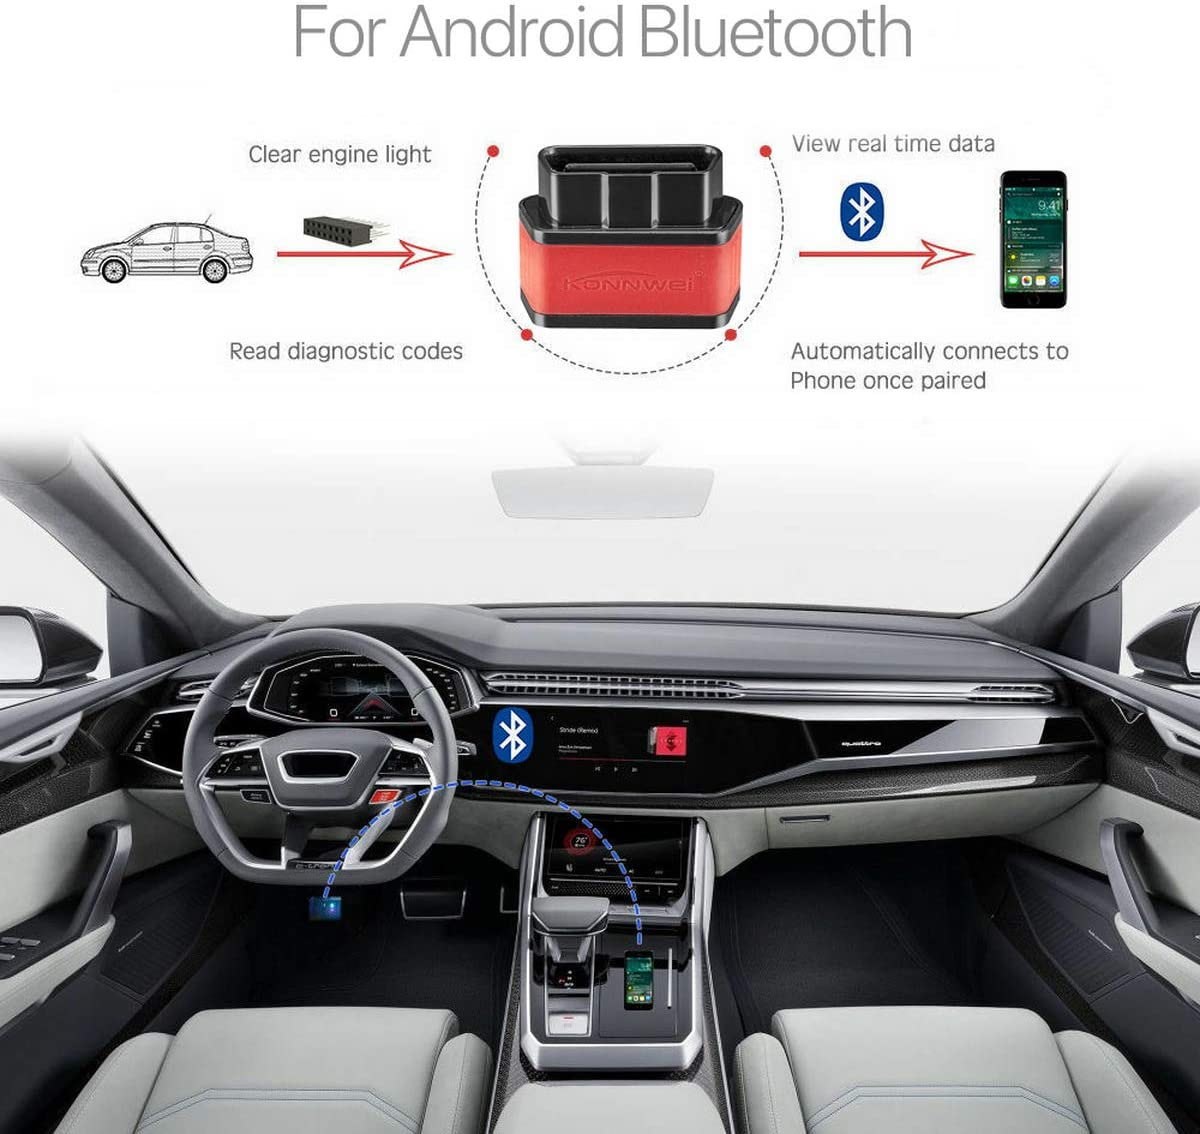 Wonolo OBD2 Bluetooth 3.0 Scanner OBDII Bluetooth Scan Tool Car Diagnostic Tool Vehicle Code Readers for Android